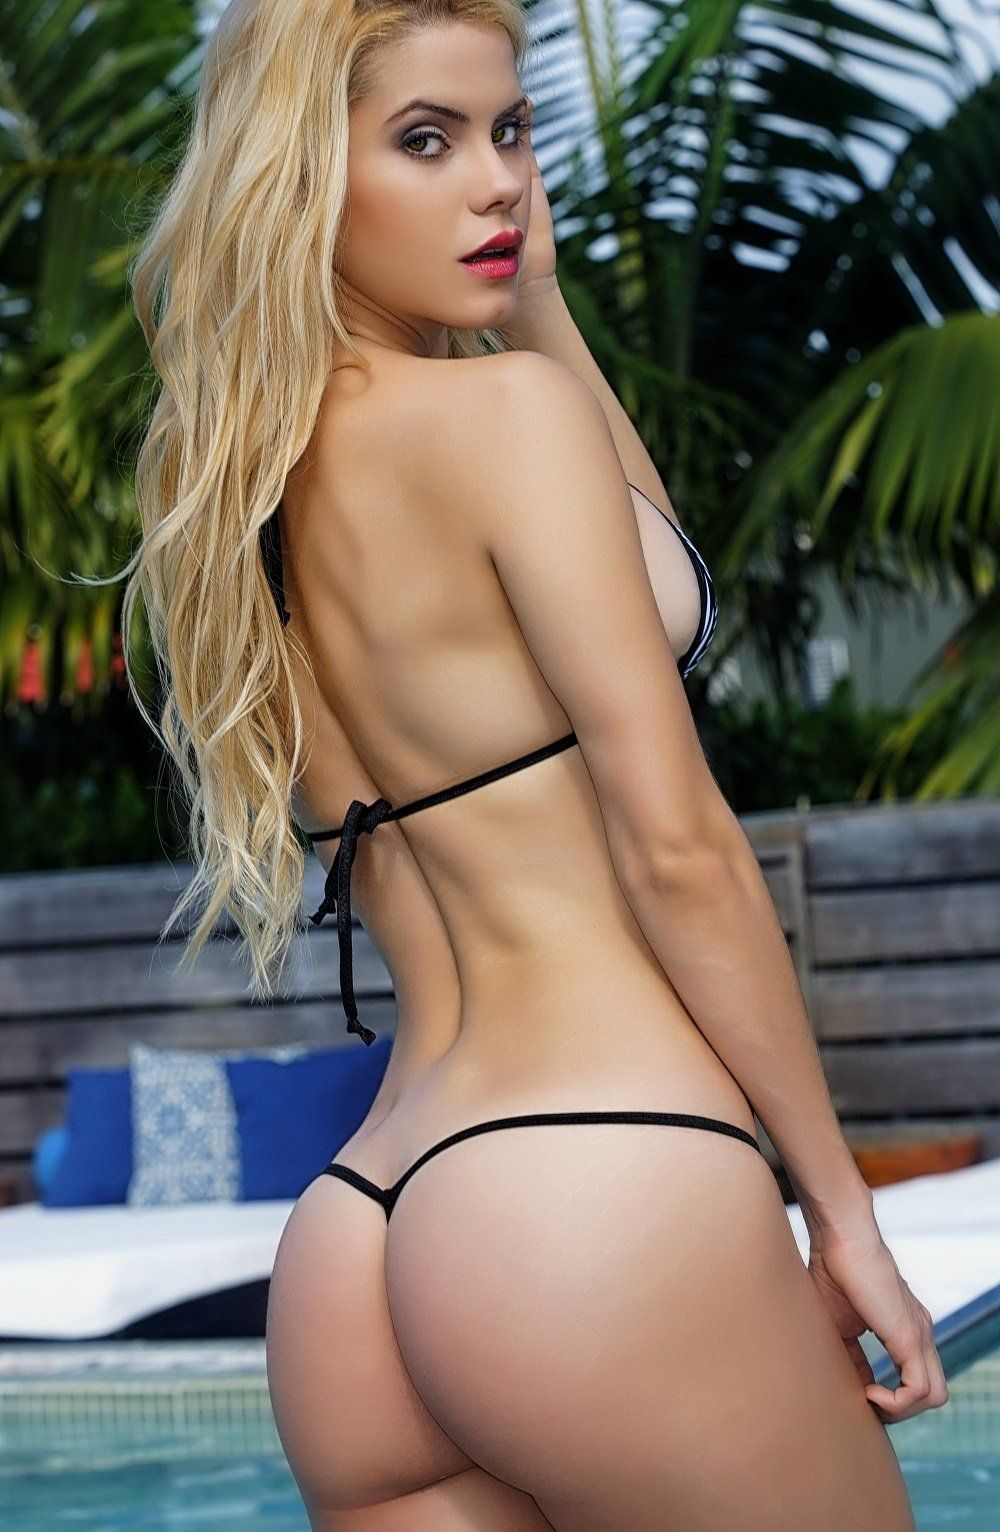 Bikini in butts string